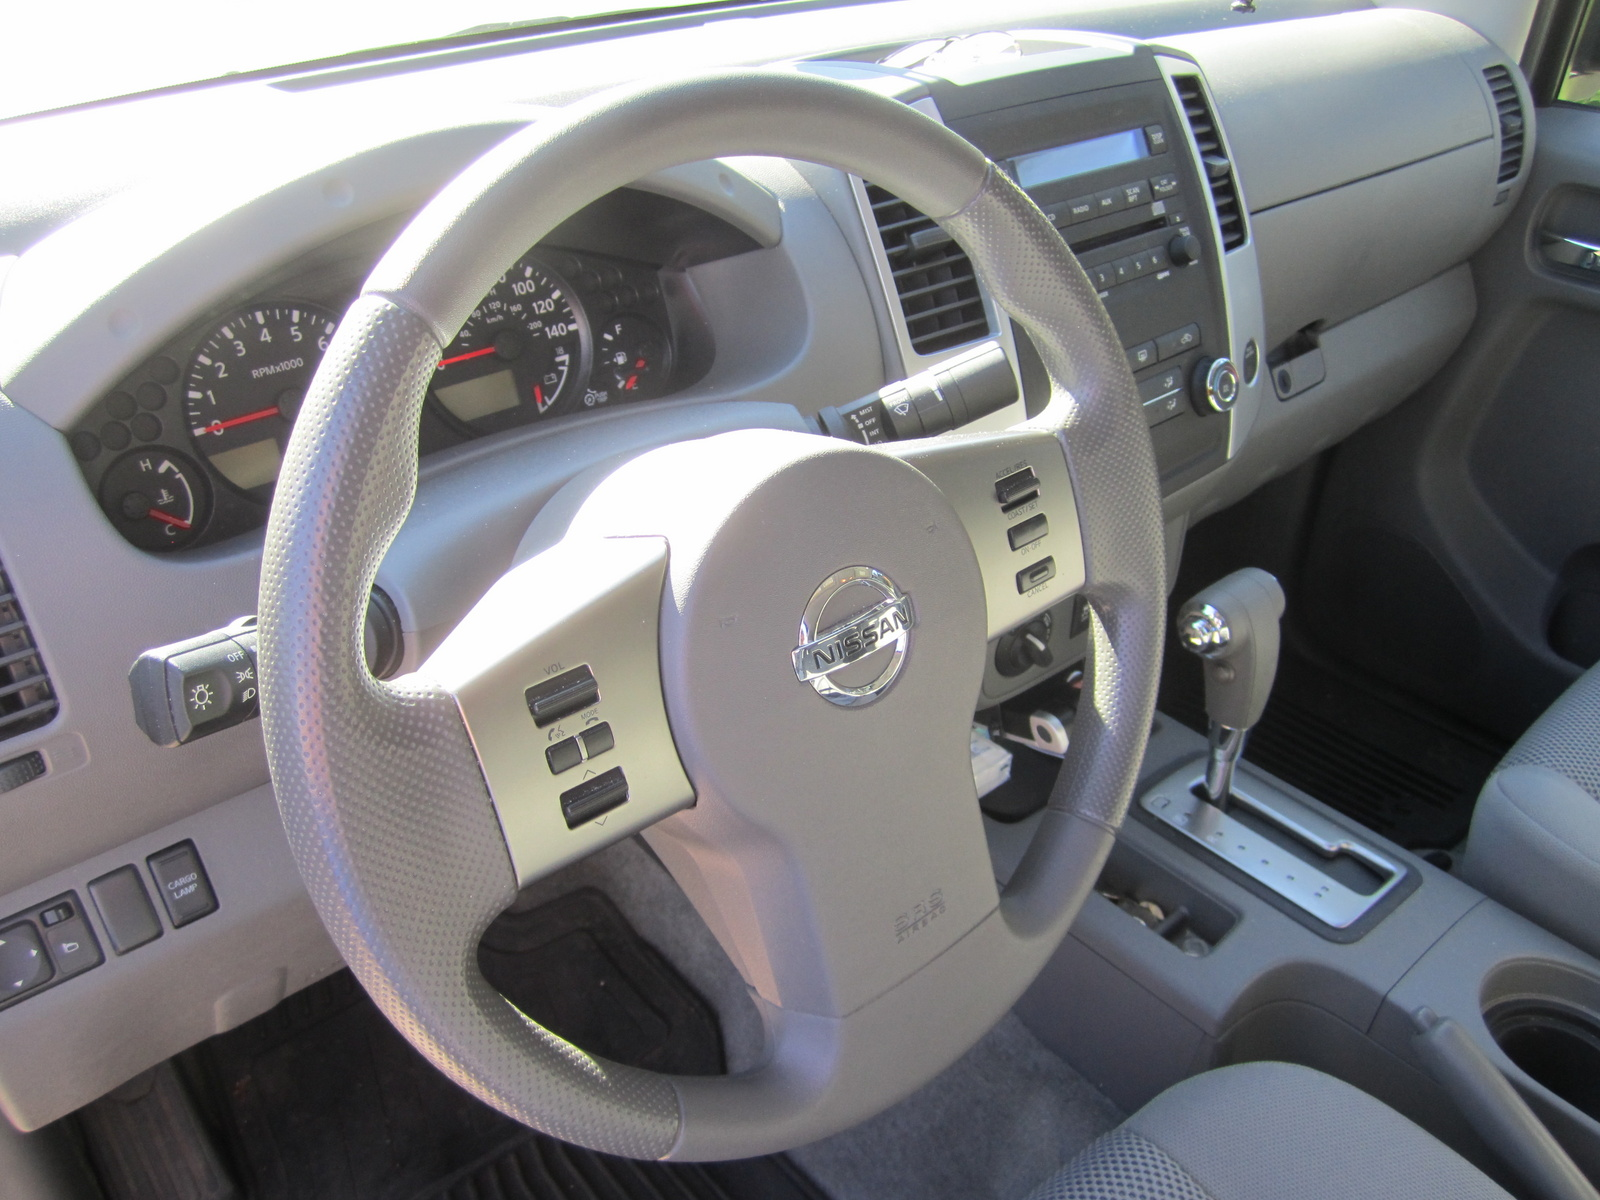 2012 Nissan Frontier SV V6 Crew Cab picture, interior